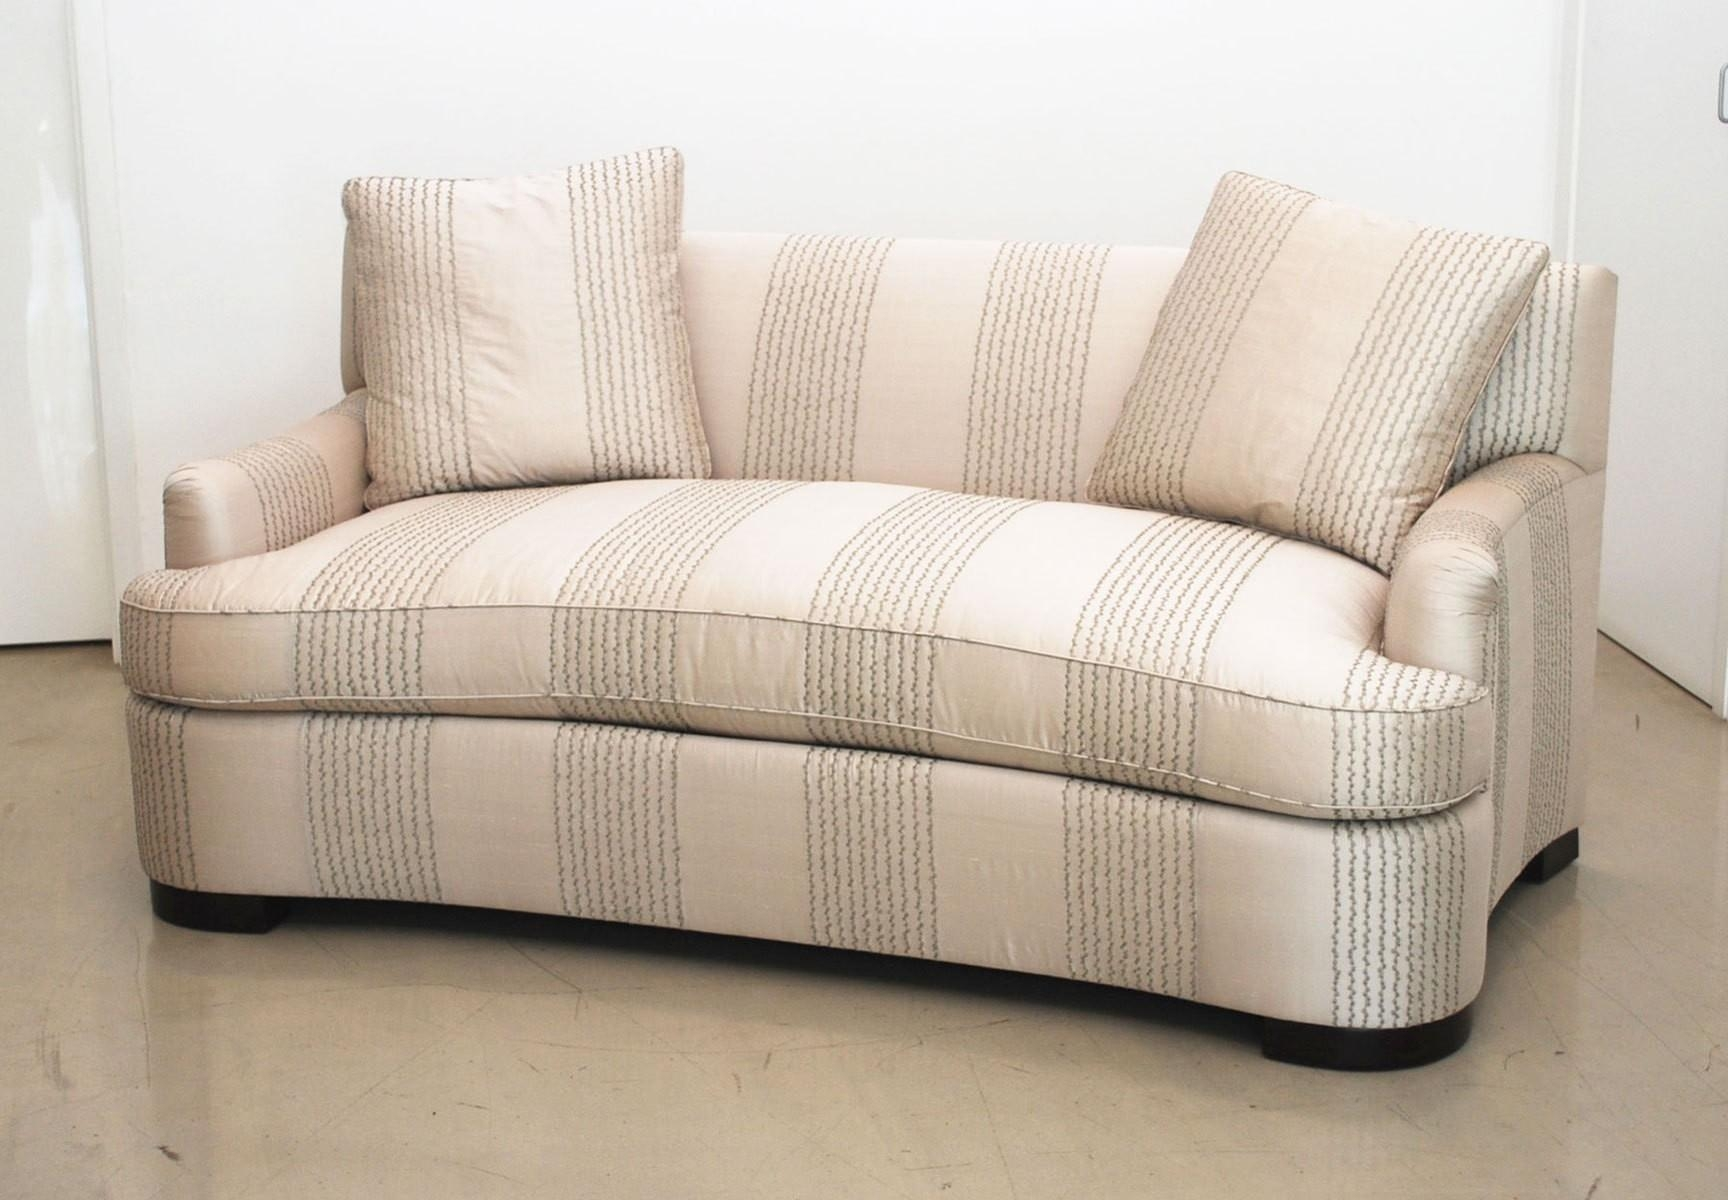 Modern Sofas Houston – Fjellkjeden With Regard To Modern Sofas Houston (View 4 of 20)